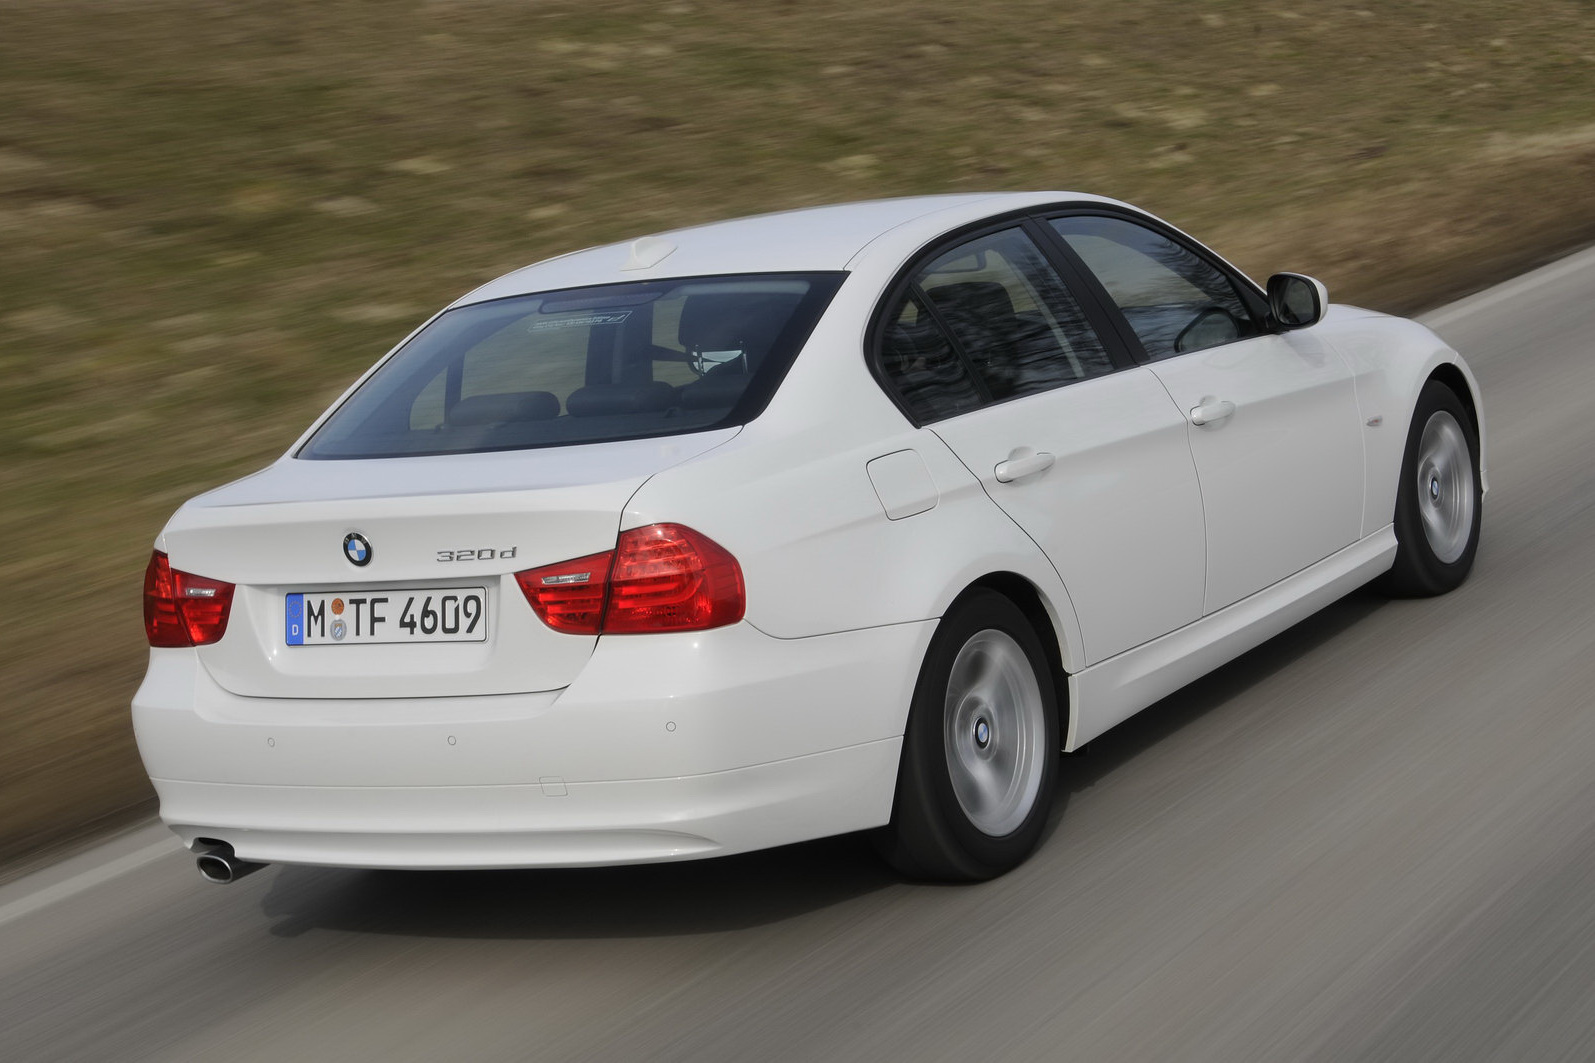 BMW-320d-EfficientDynamics-4. Just as impressive was that the intrepid